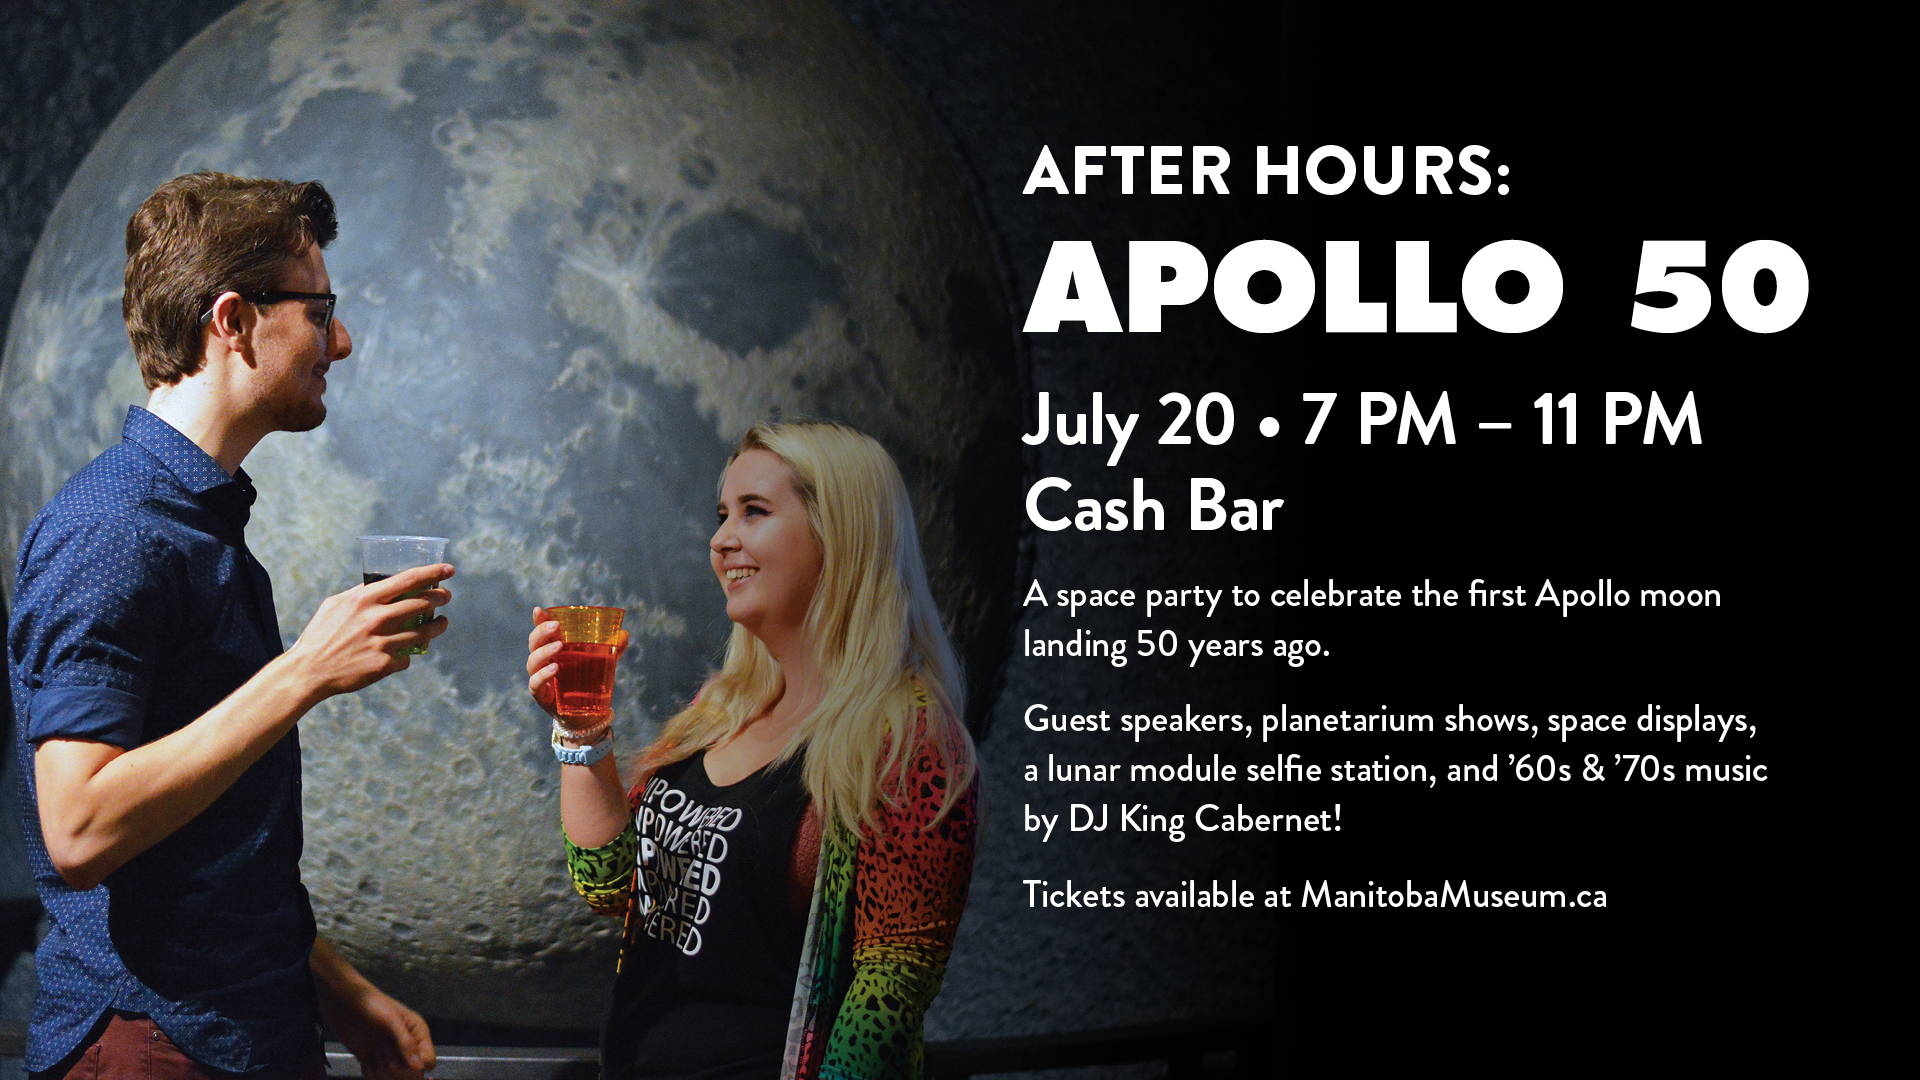 After Hours: Apollo 50